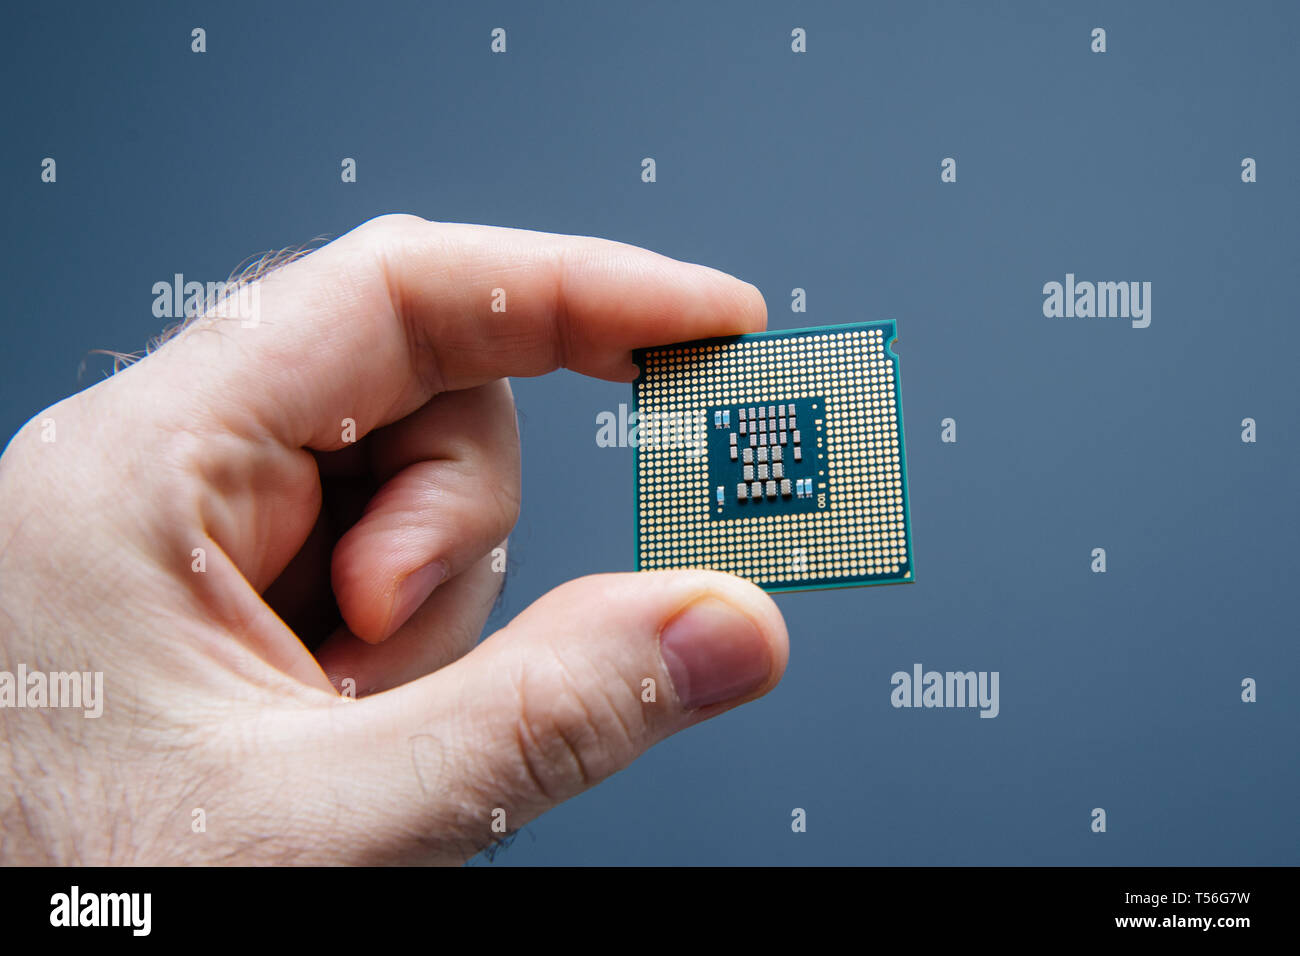 Male IT professional holding in hand new powerful CPU Central processing unit with high core count and elevated frequency - isolated on blue office background - Stock Image